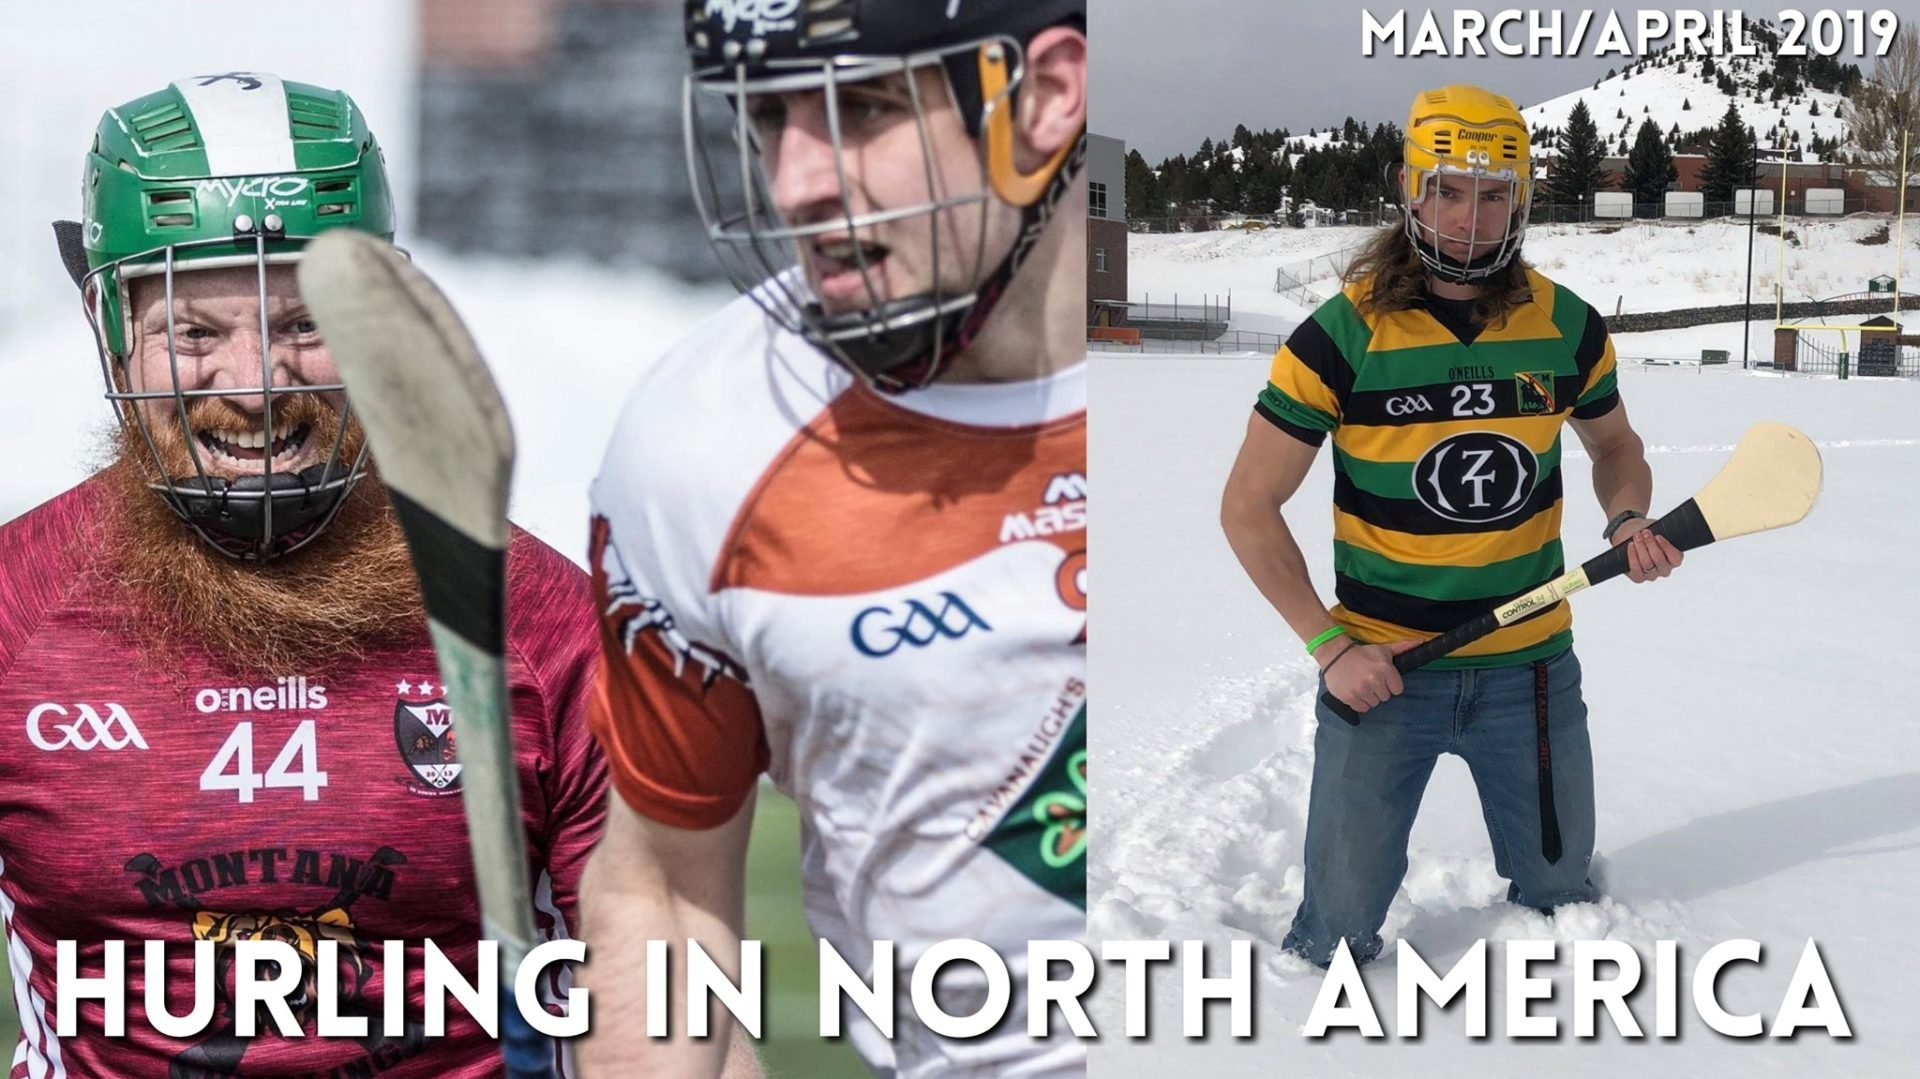 Hurling in North America News March & April 2019